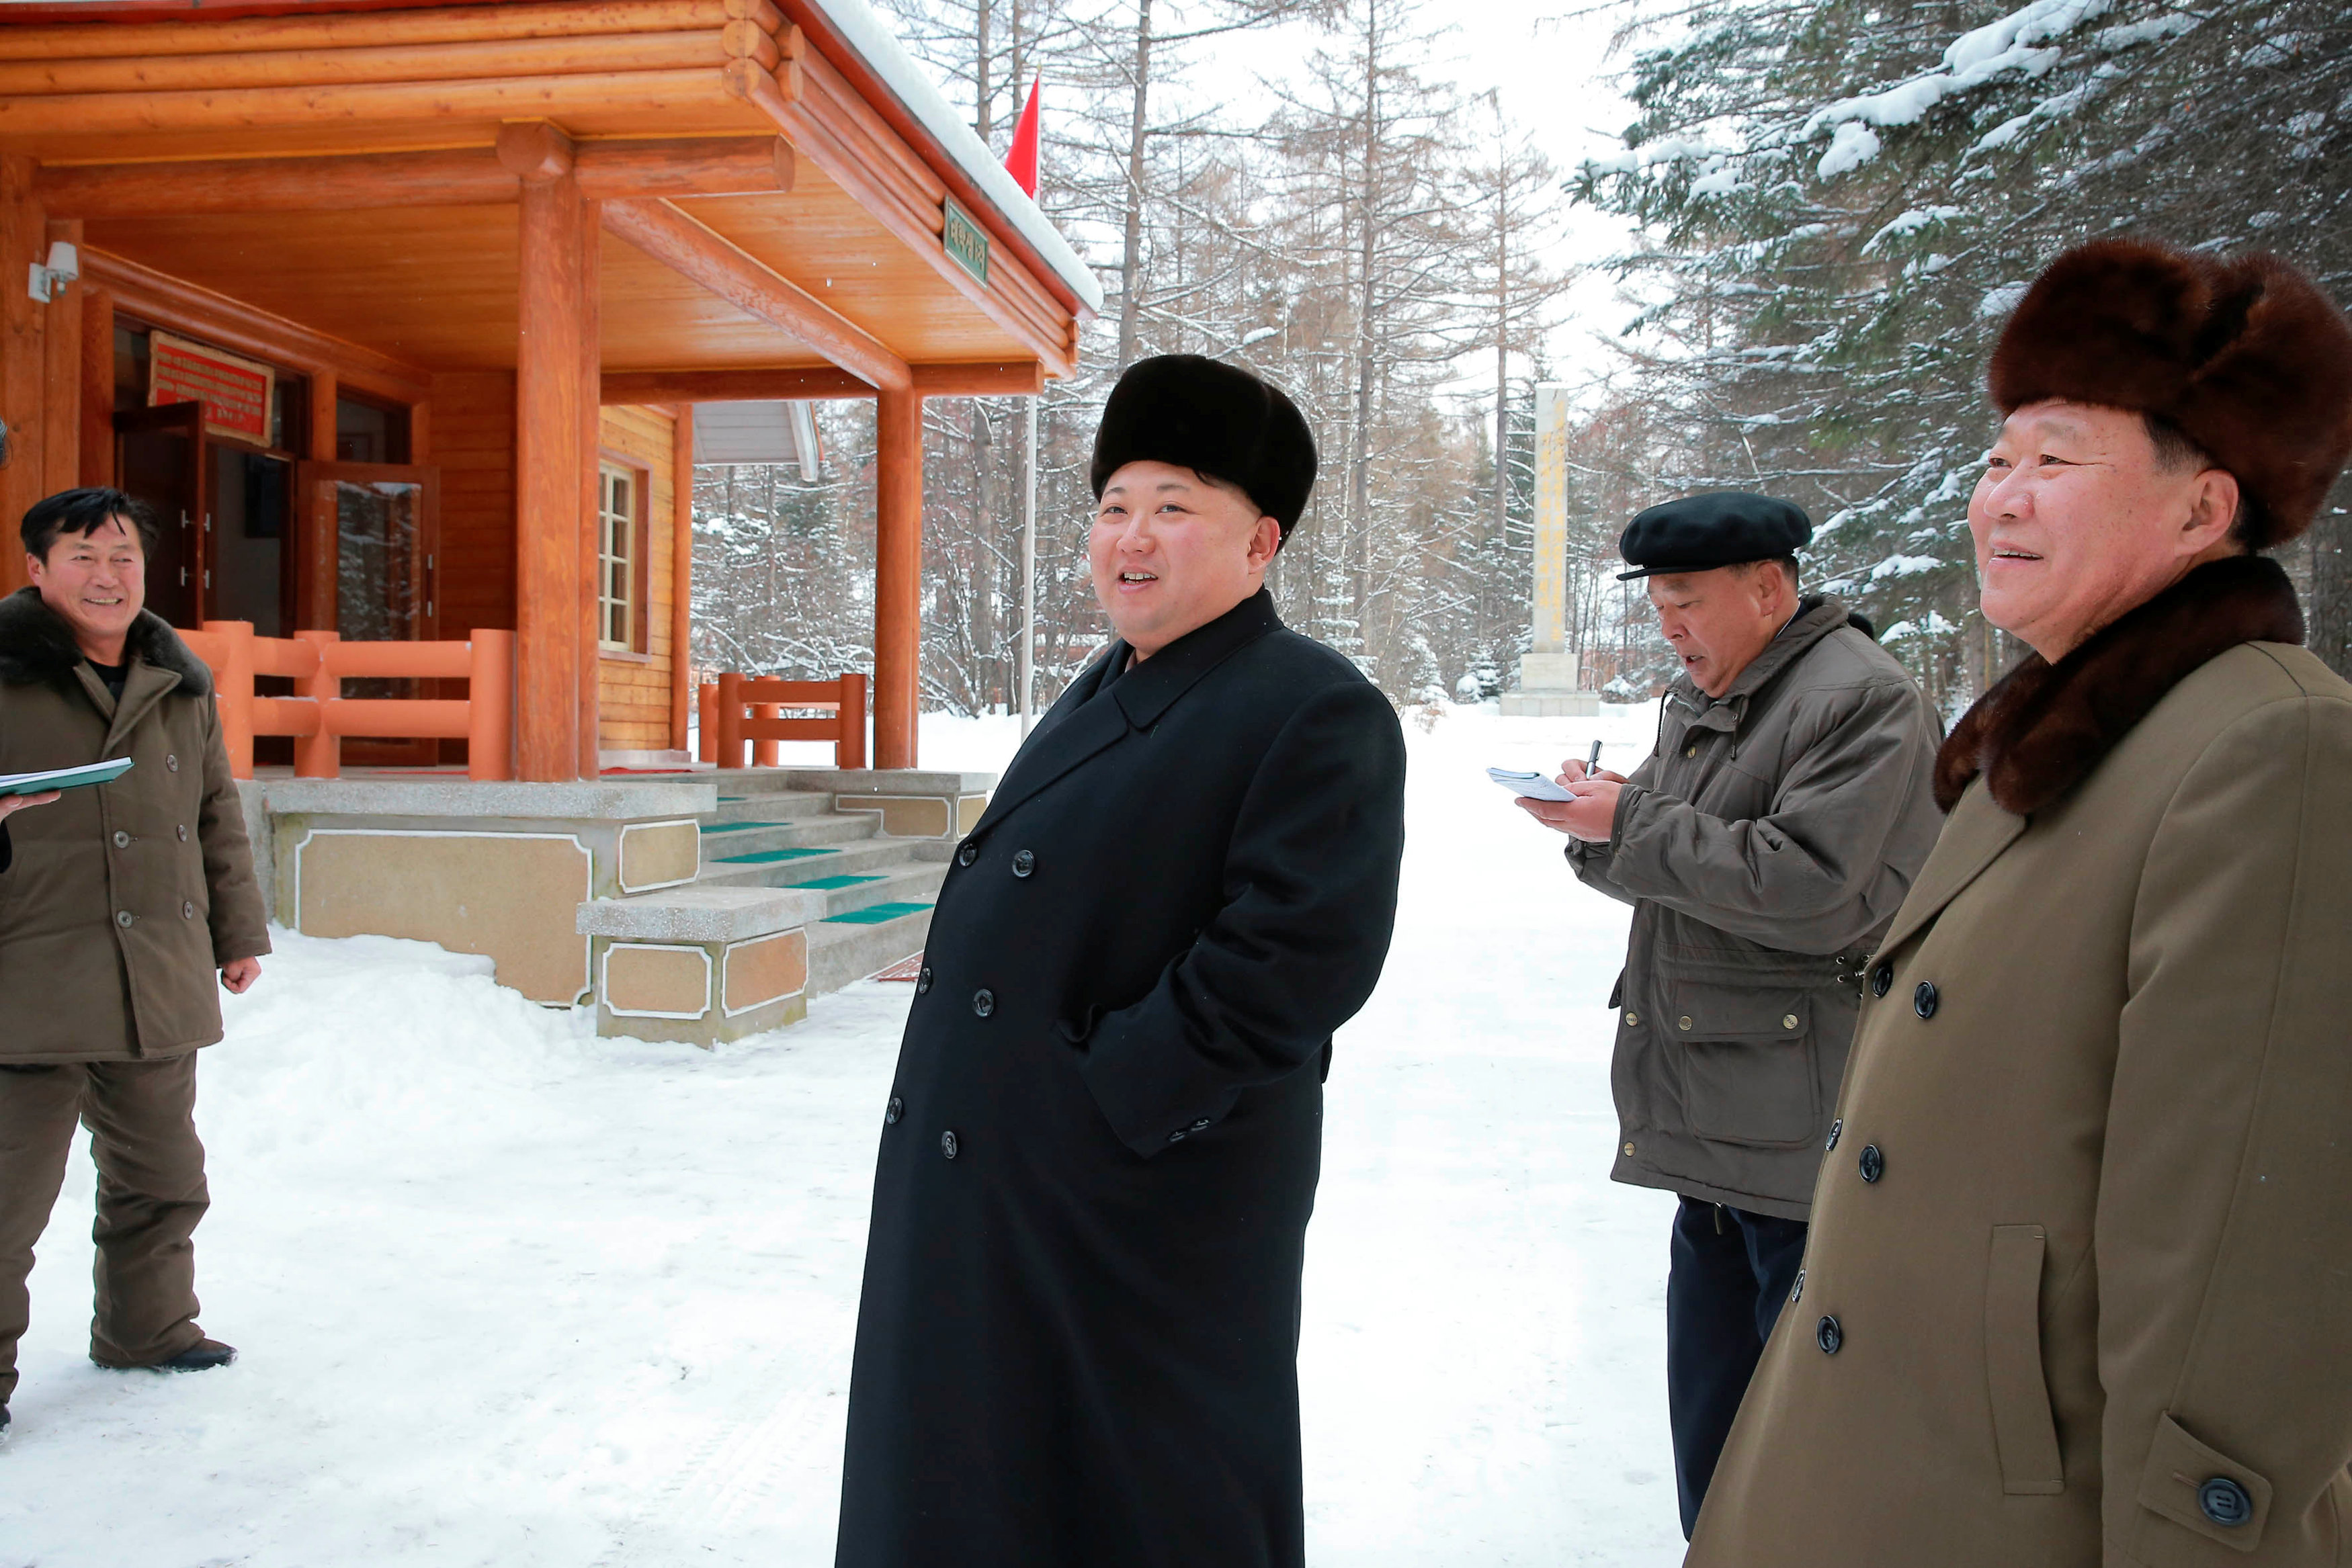 North Korean leader Kim Jong Un gives guidance during his visit to various fields of Samjiyon County in this undated photo released by North Korea's Korean Central News Agency (KCNA) in Pyongyang